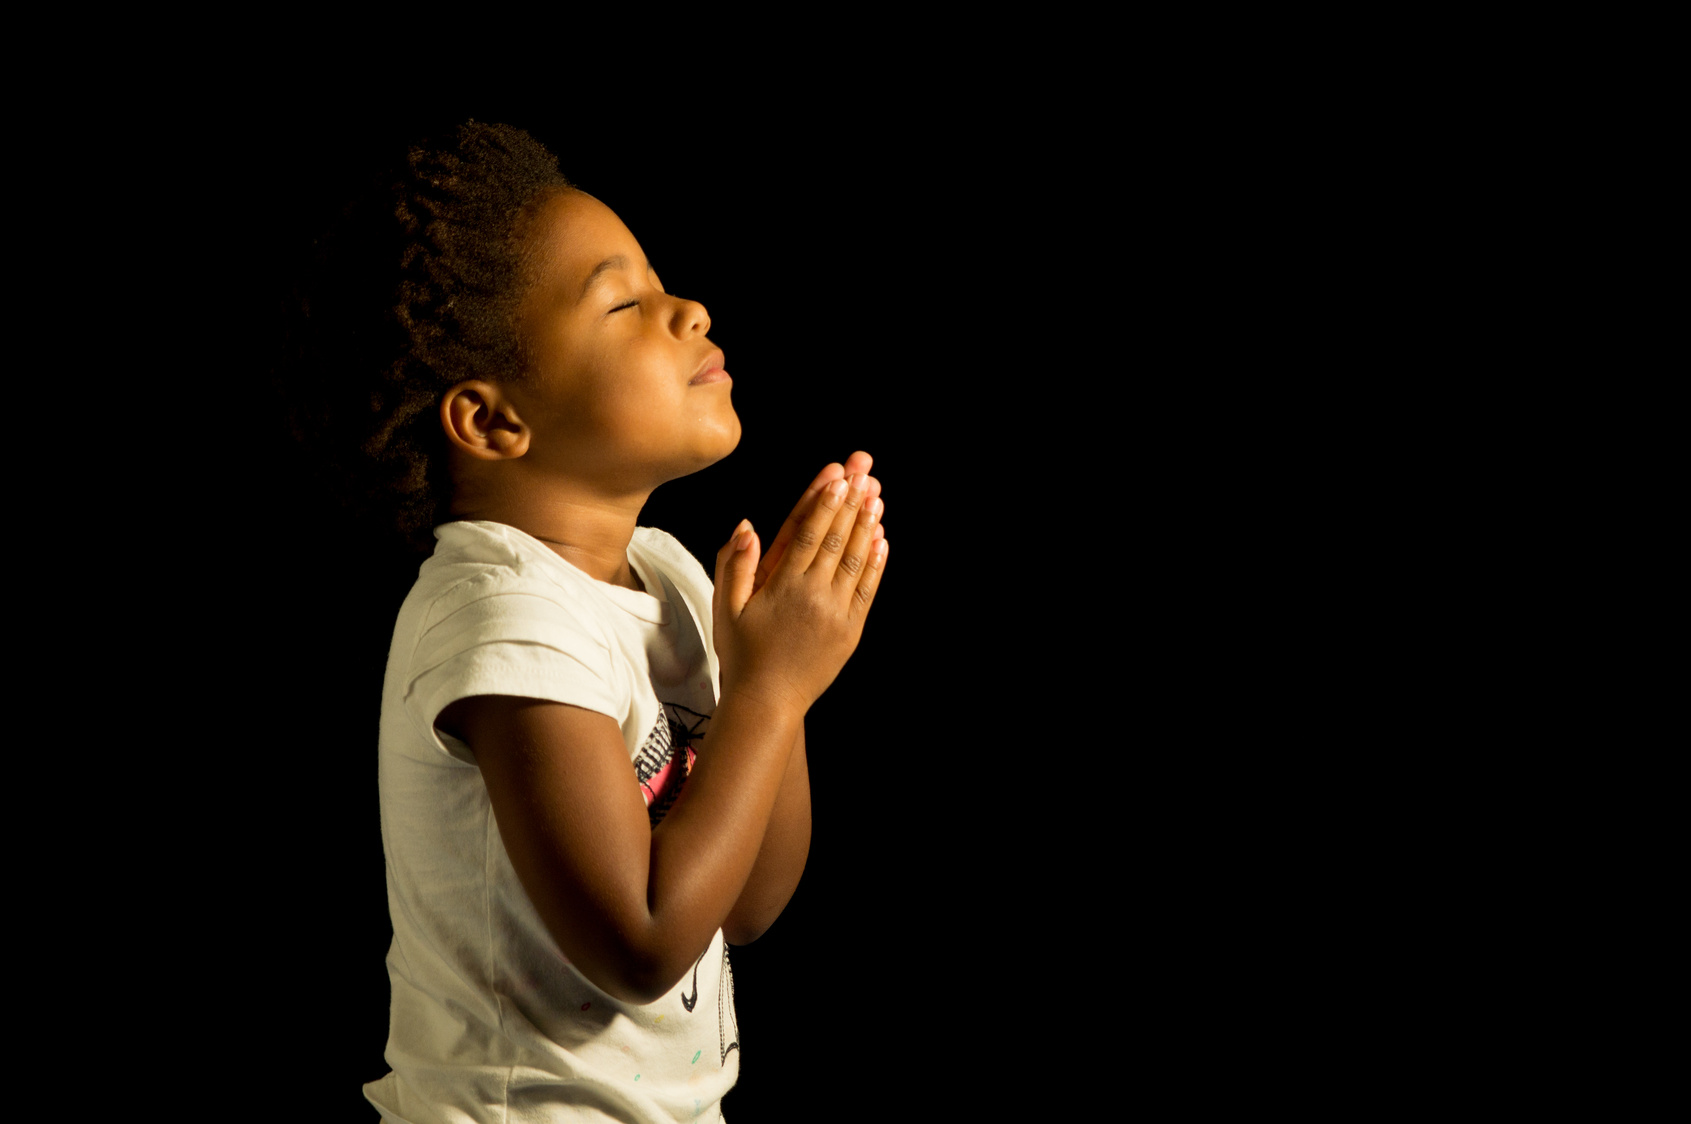 A young child prays to God.